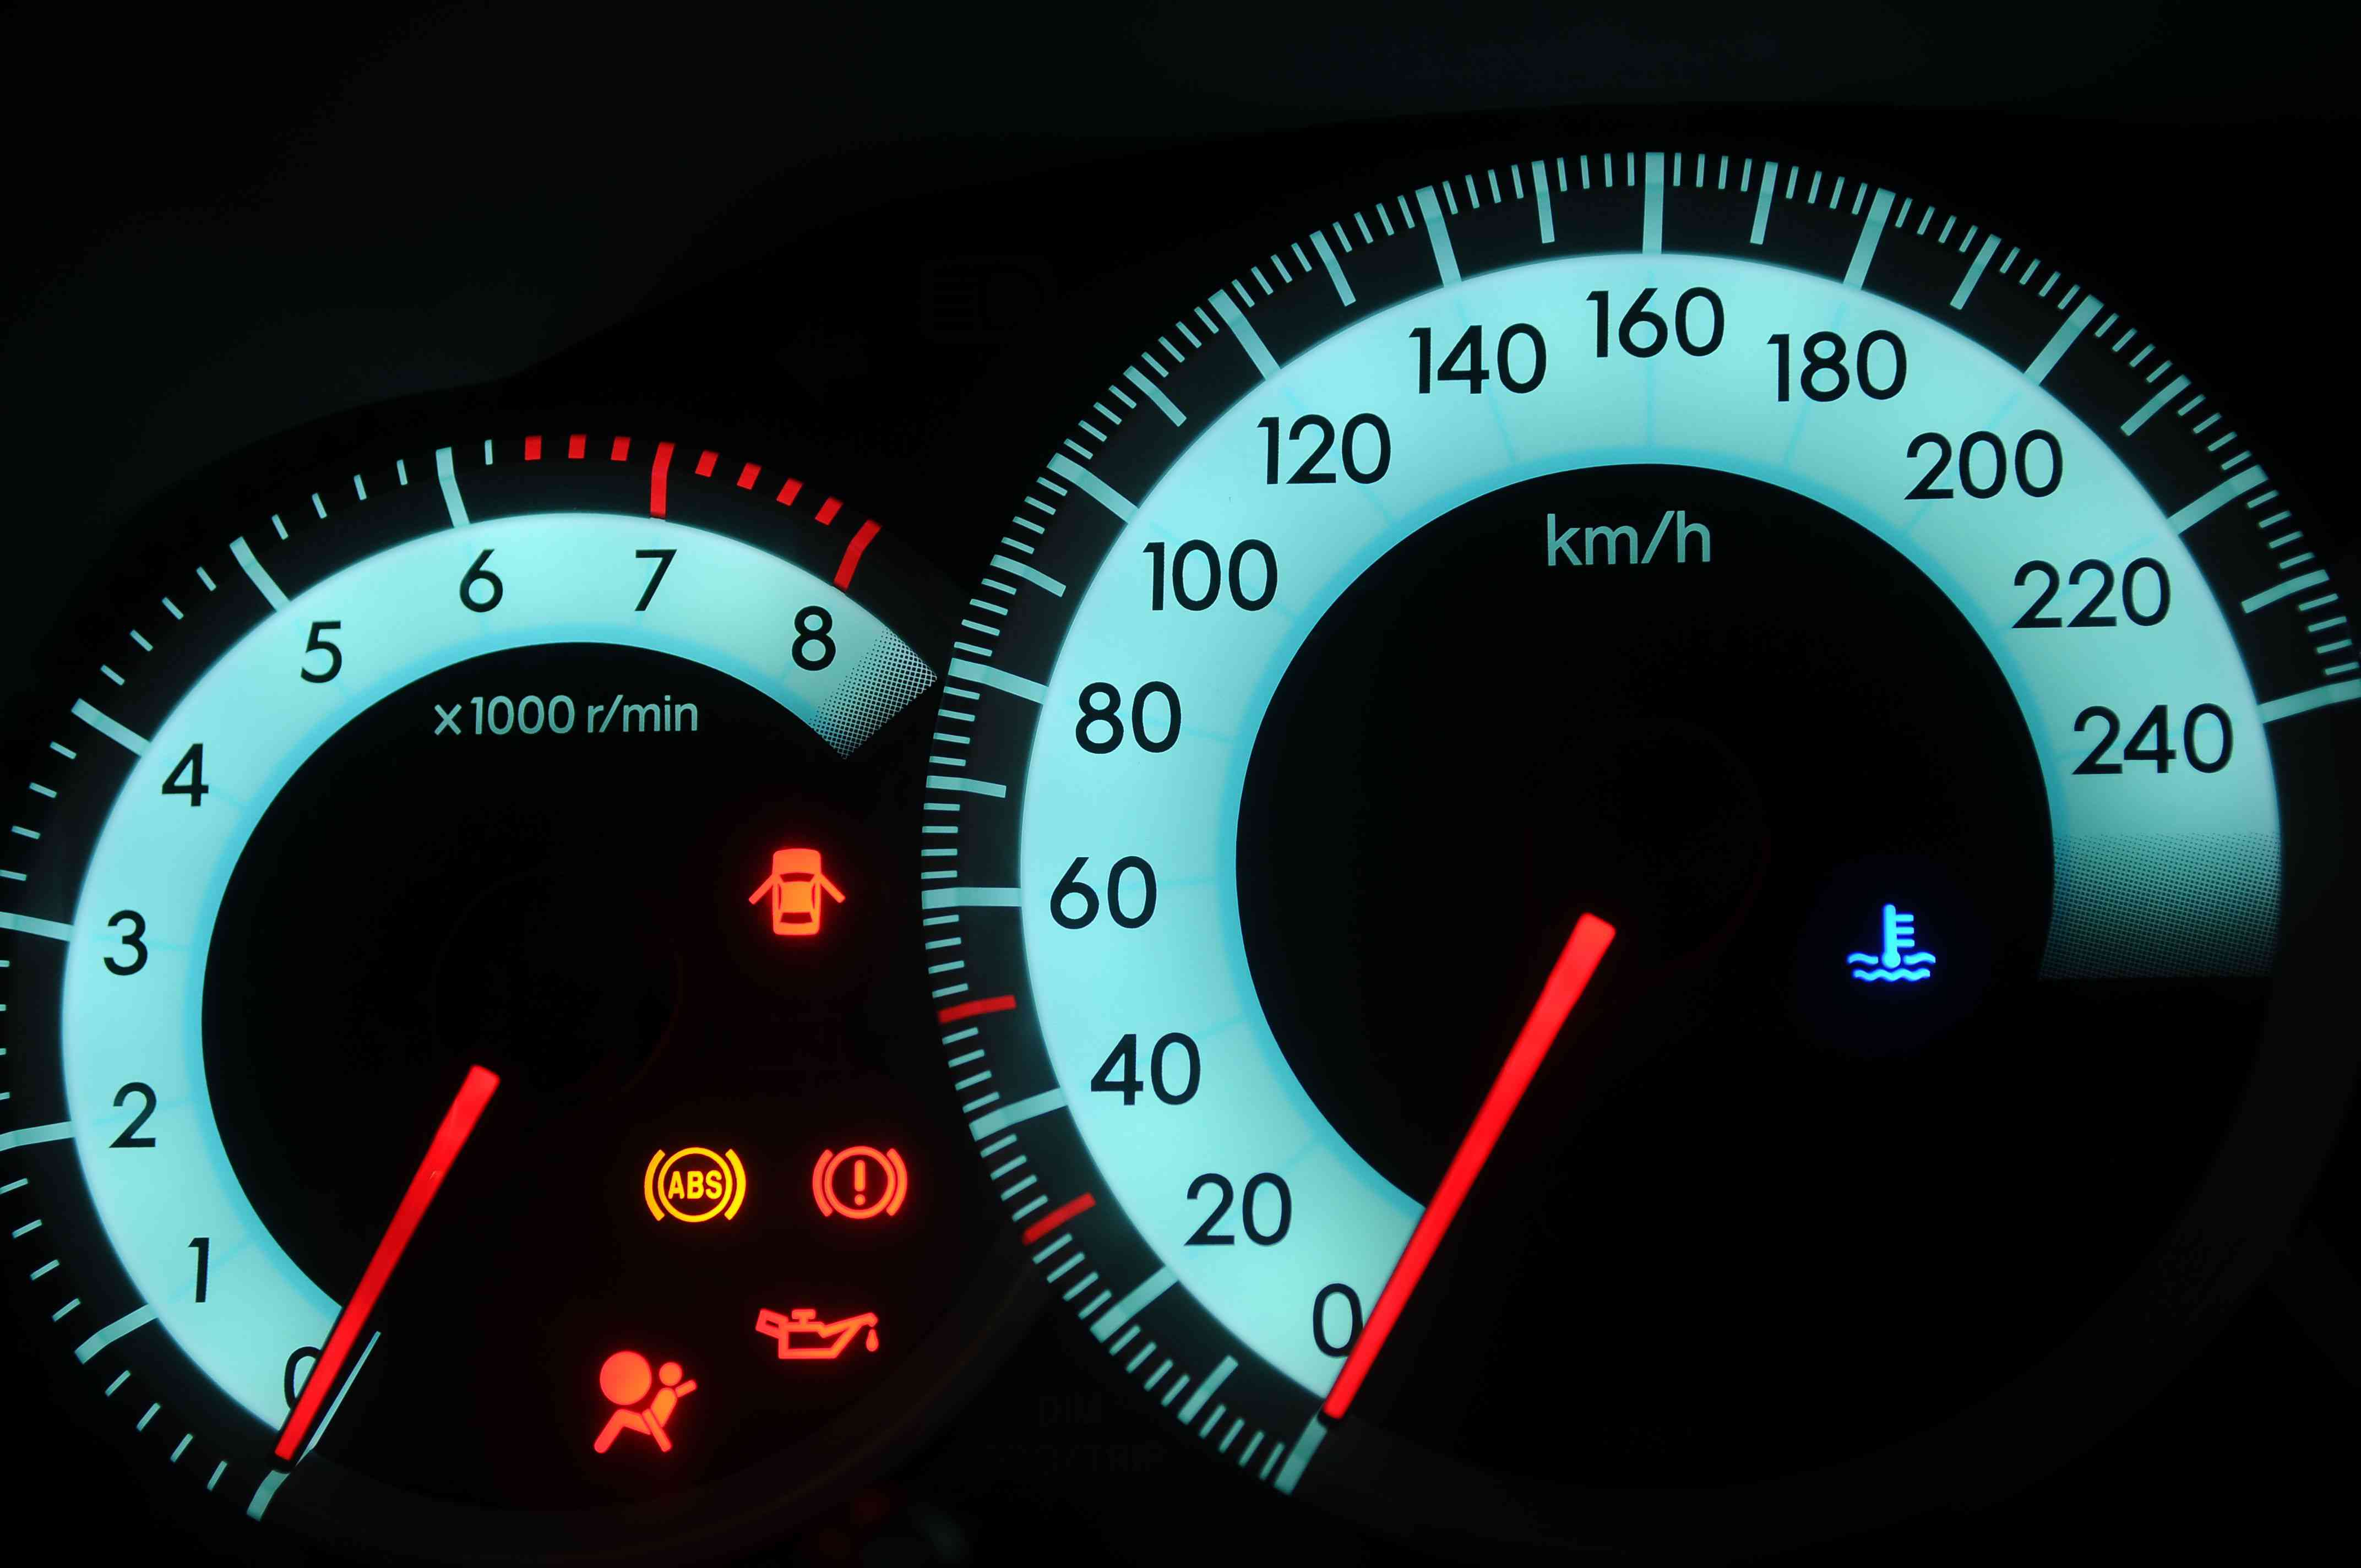 Dashboard lights and icons